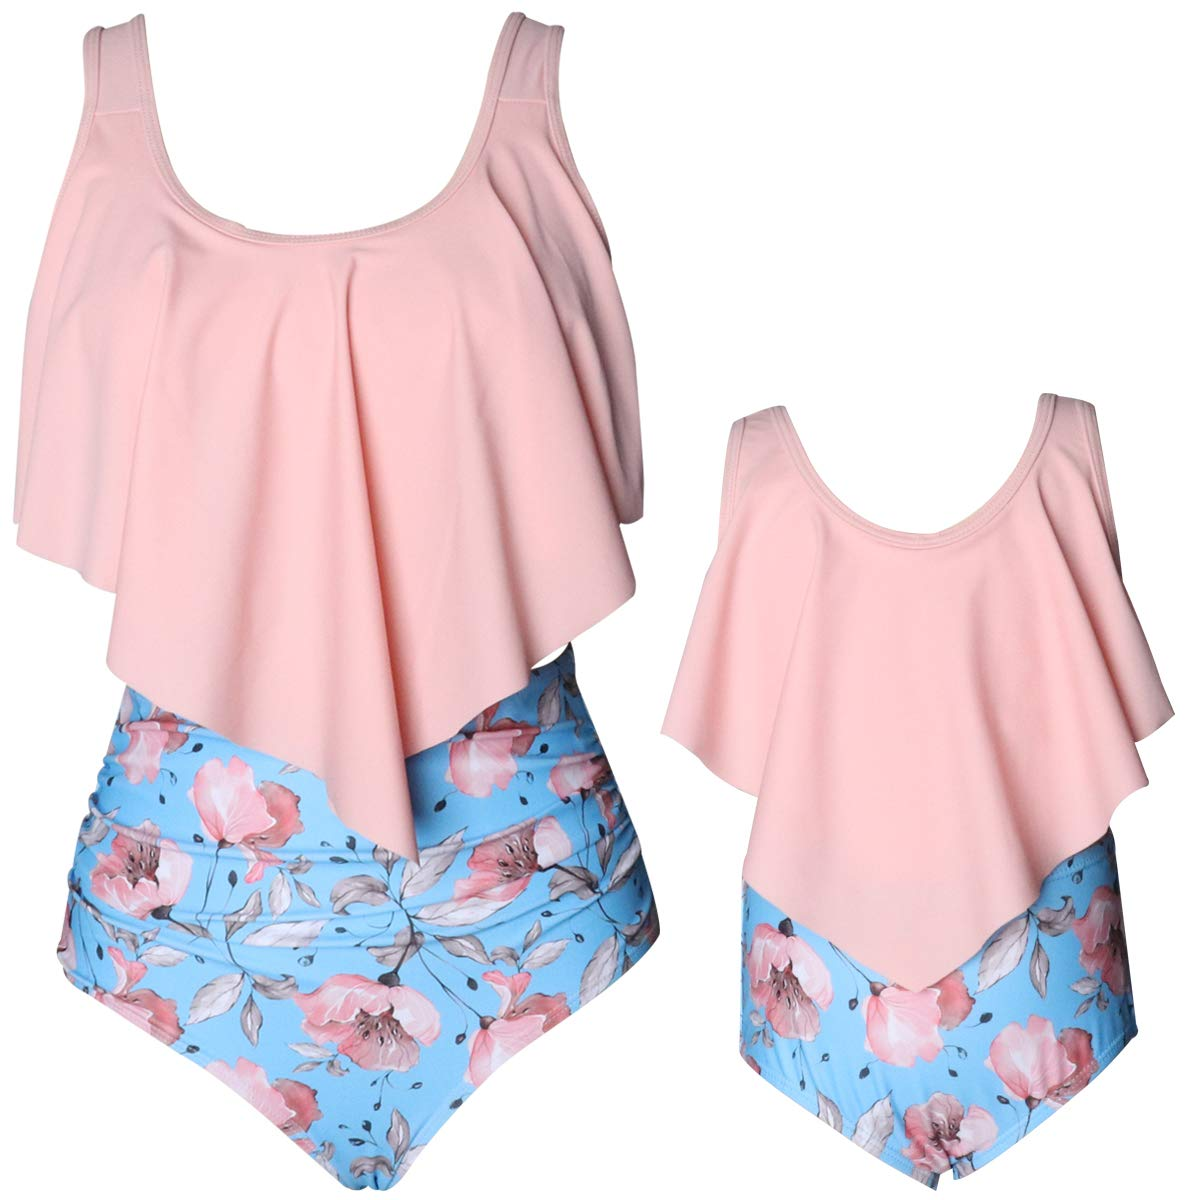 Family Matching Bikini Swimsuit One-Piece Flounce Swimsuit Vintage Printed Off Shoulder Bathing Suit Mommy and Me